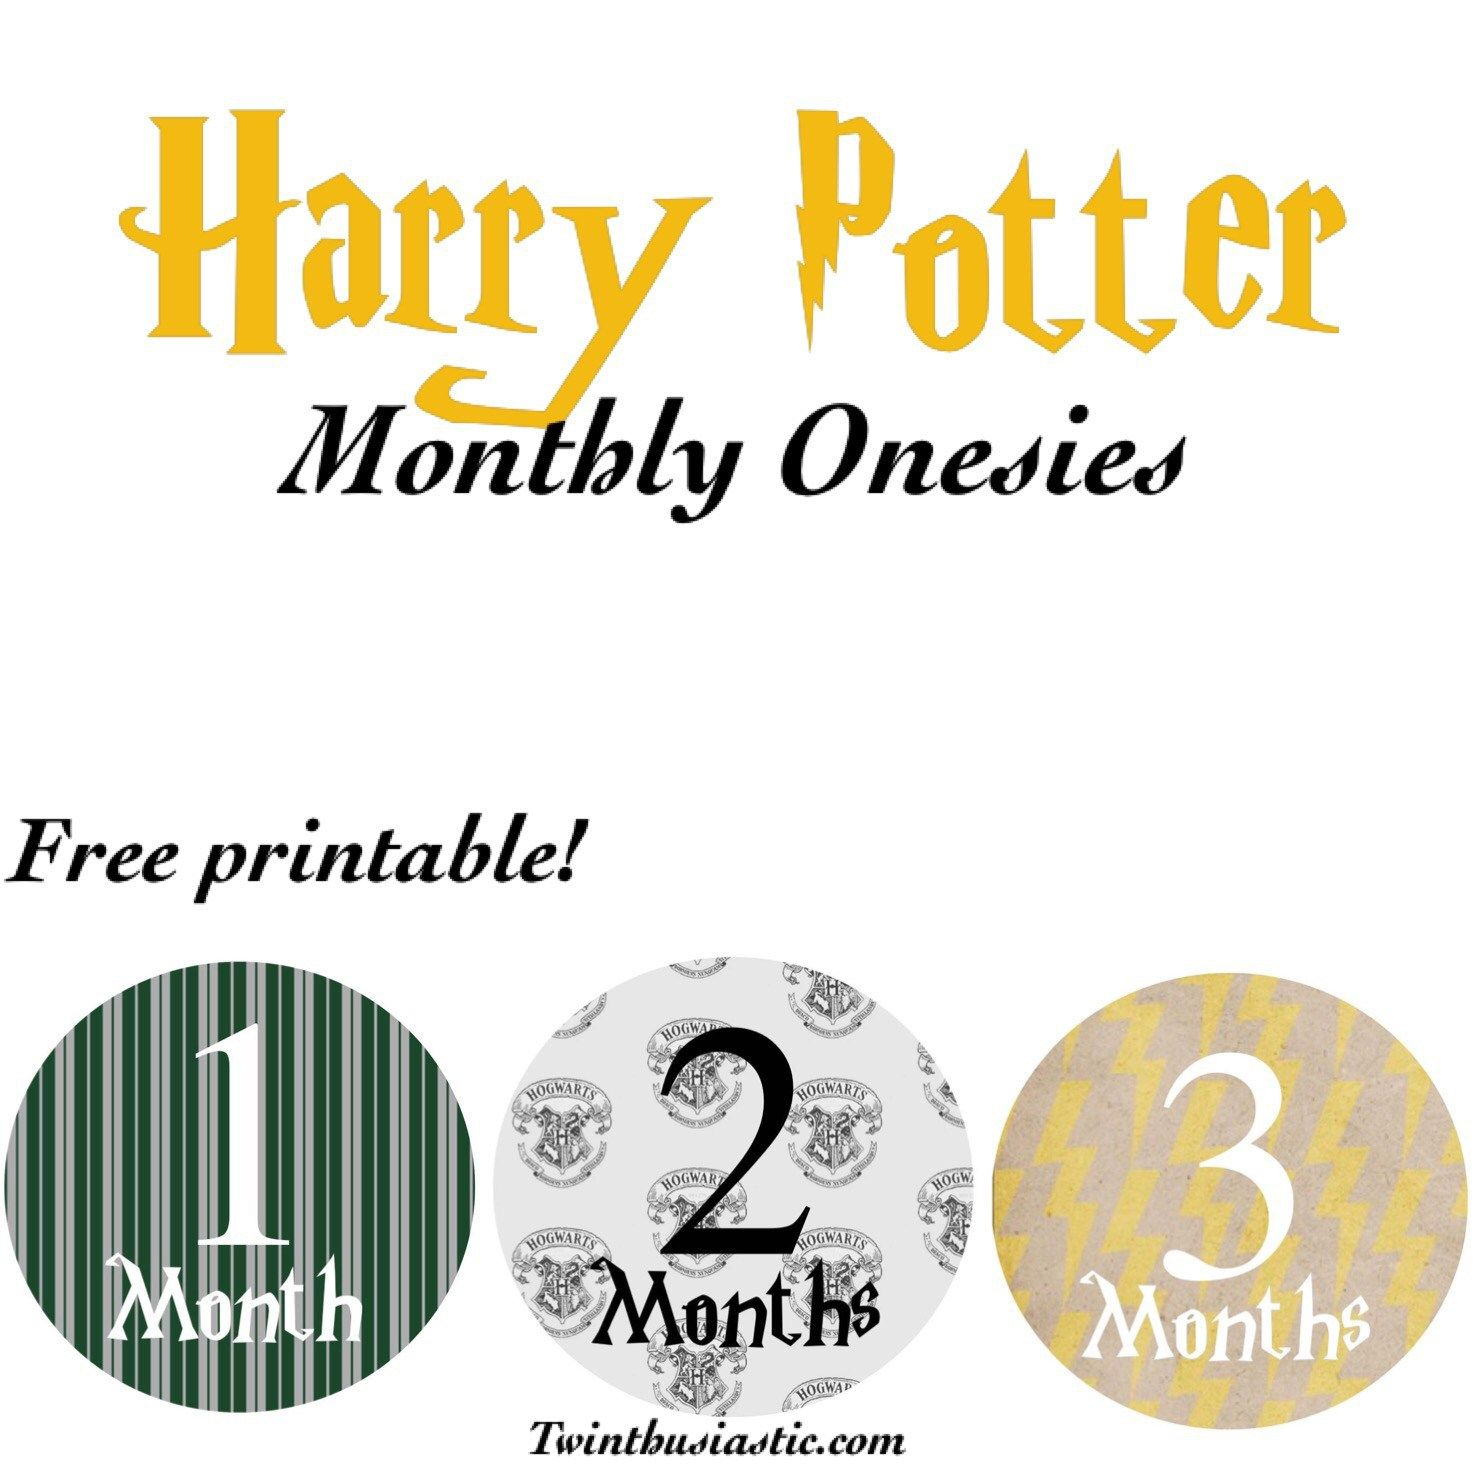 Free Printable: Harry Potter-Themed Monthly Onesies | Twin Mom Stuff - Free Printable Onesies